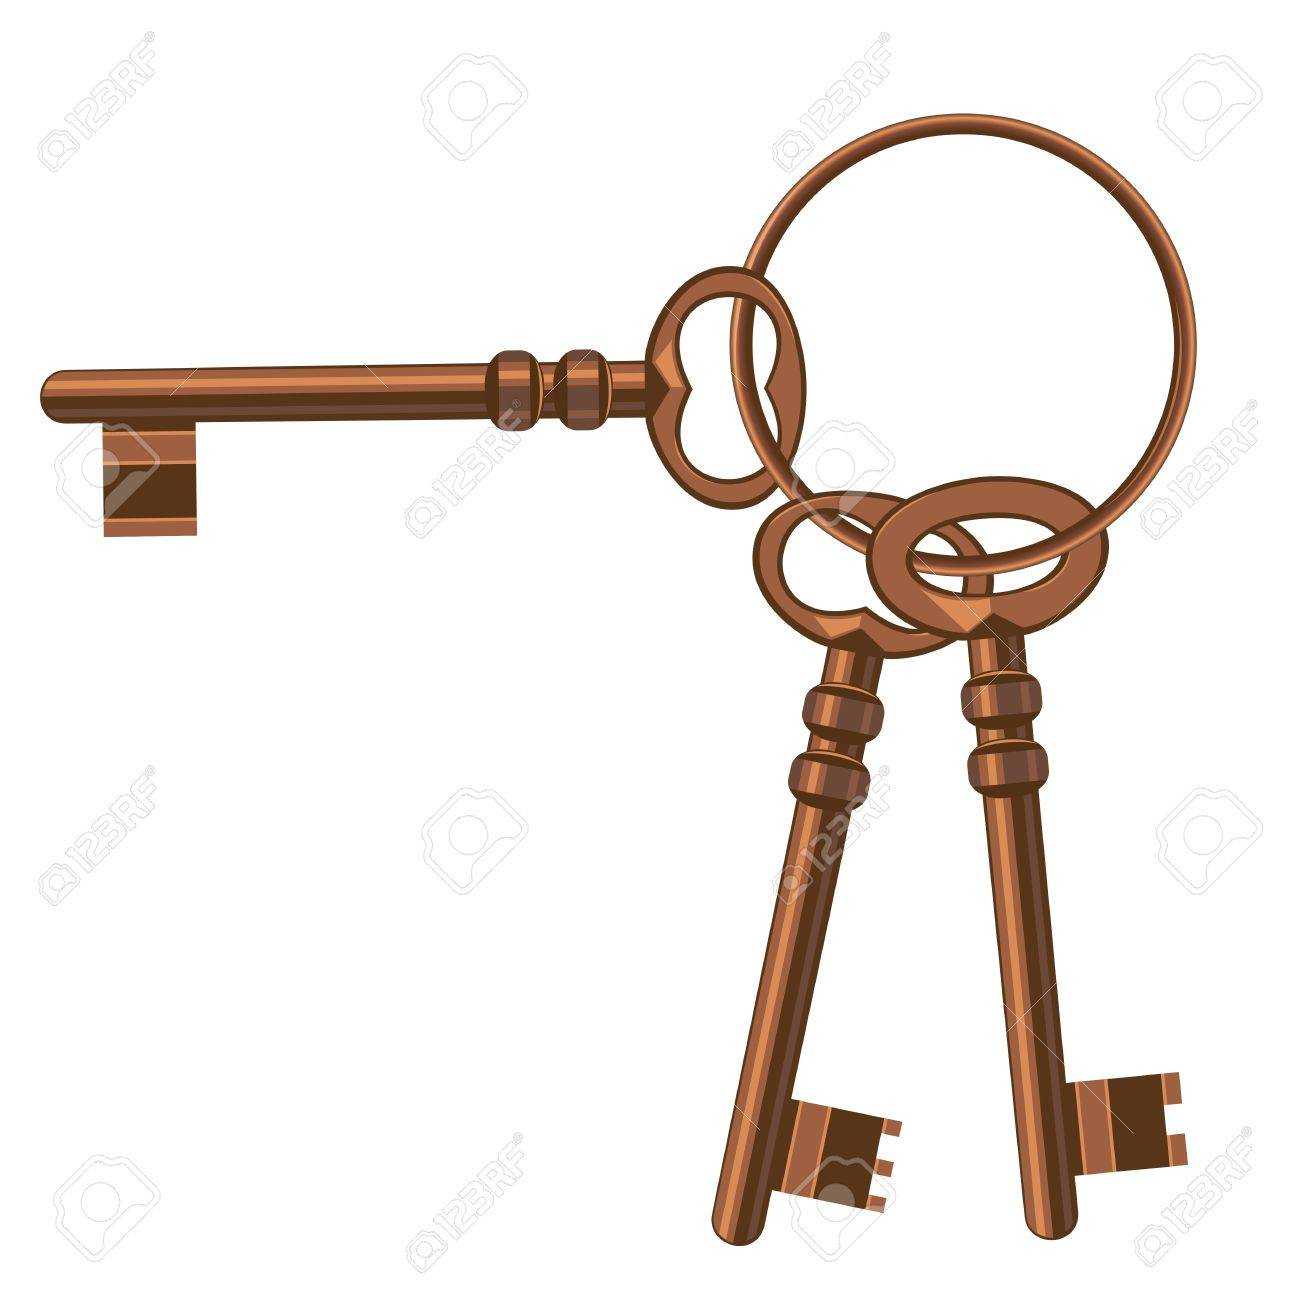 A bunch of old keys. Stock Vector - 17249125